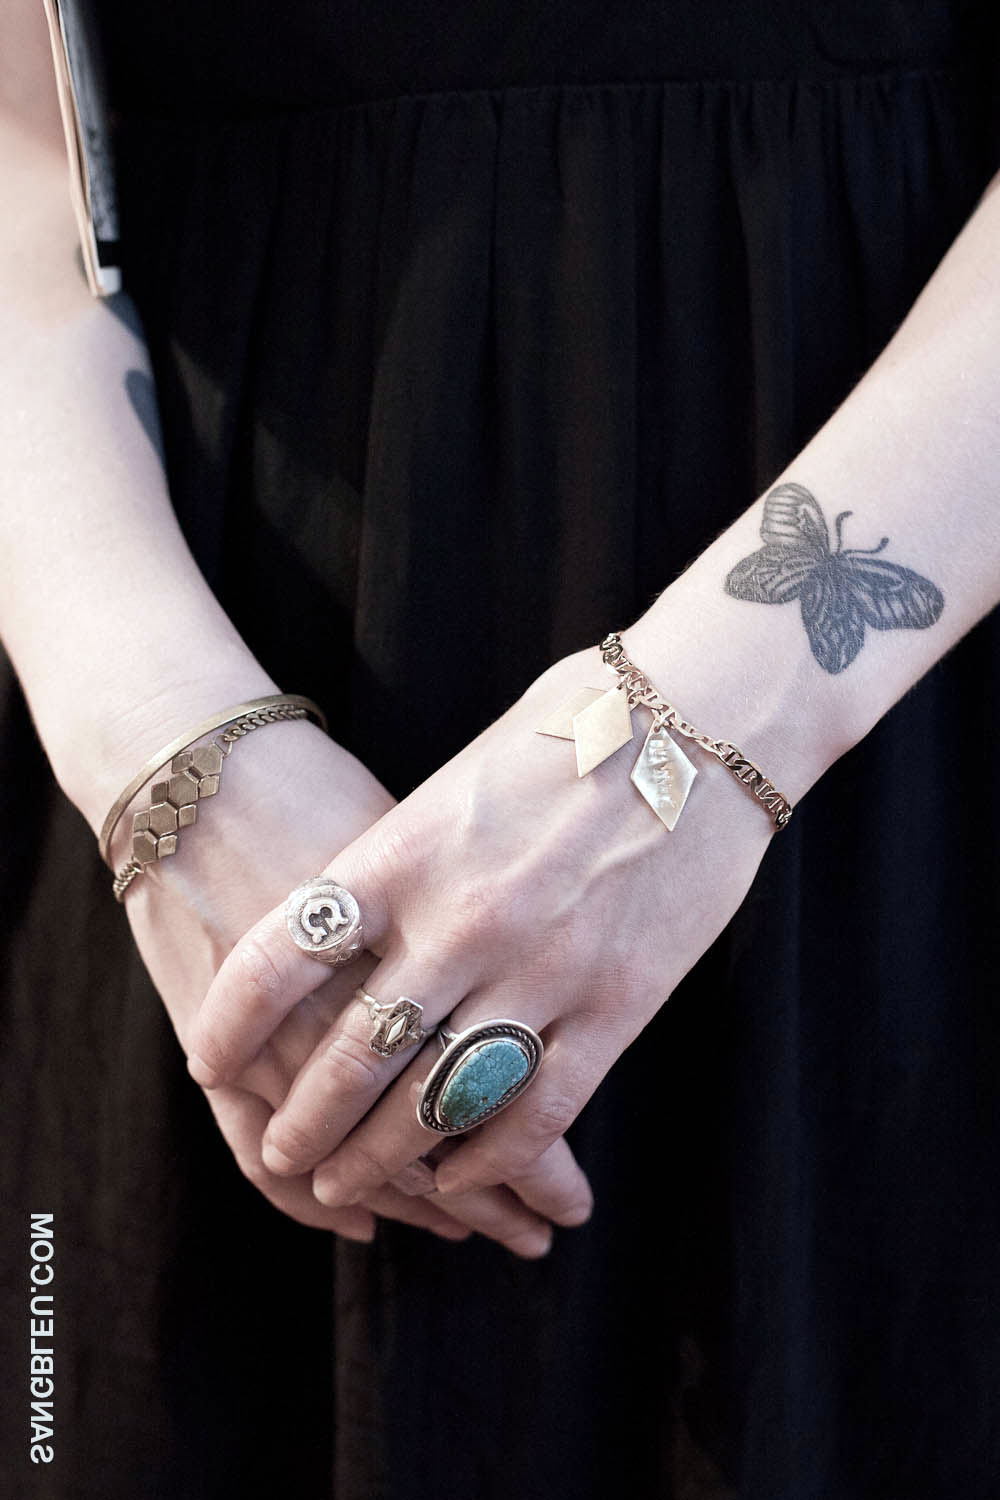 Butterfly Tattoo On Hand Meaning